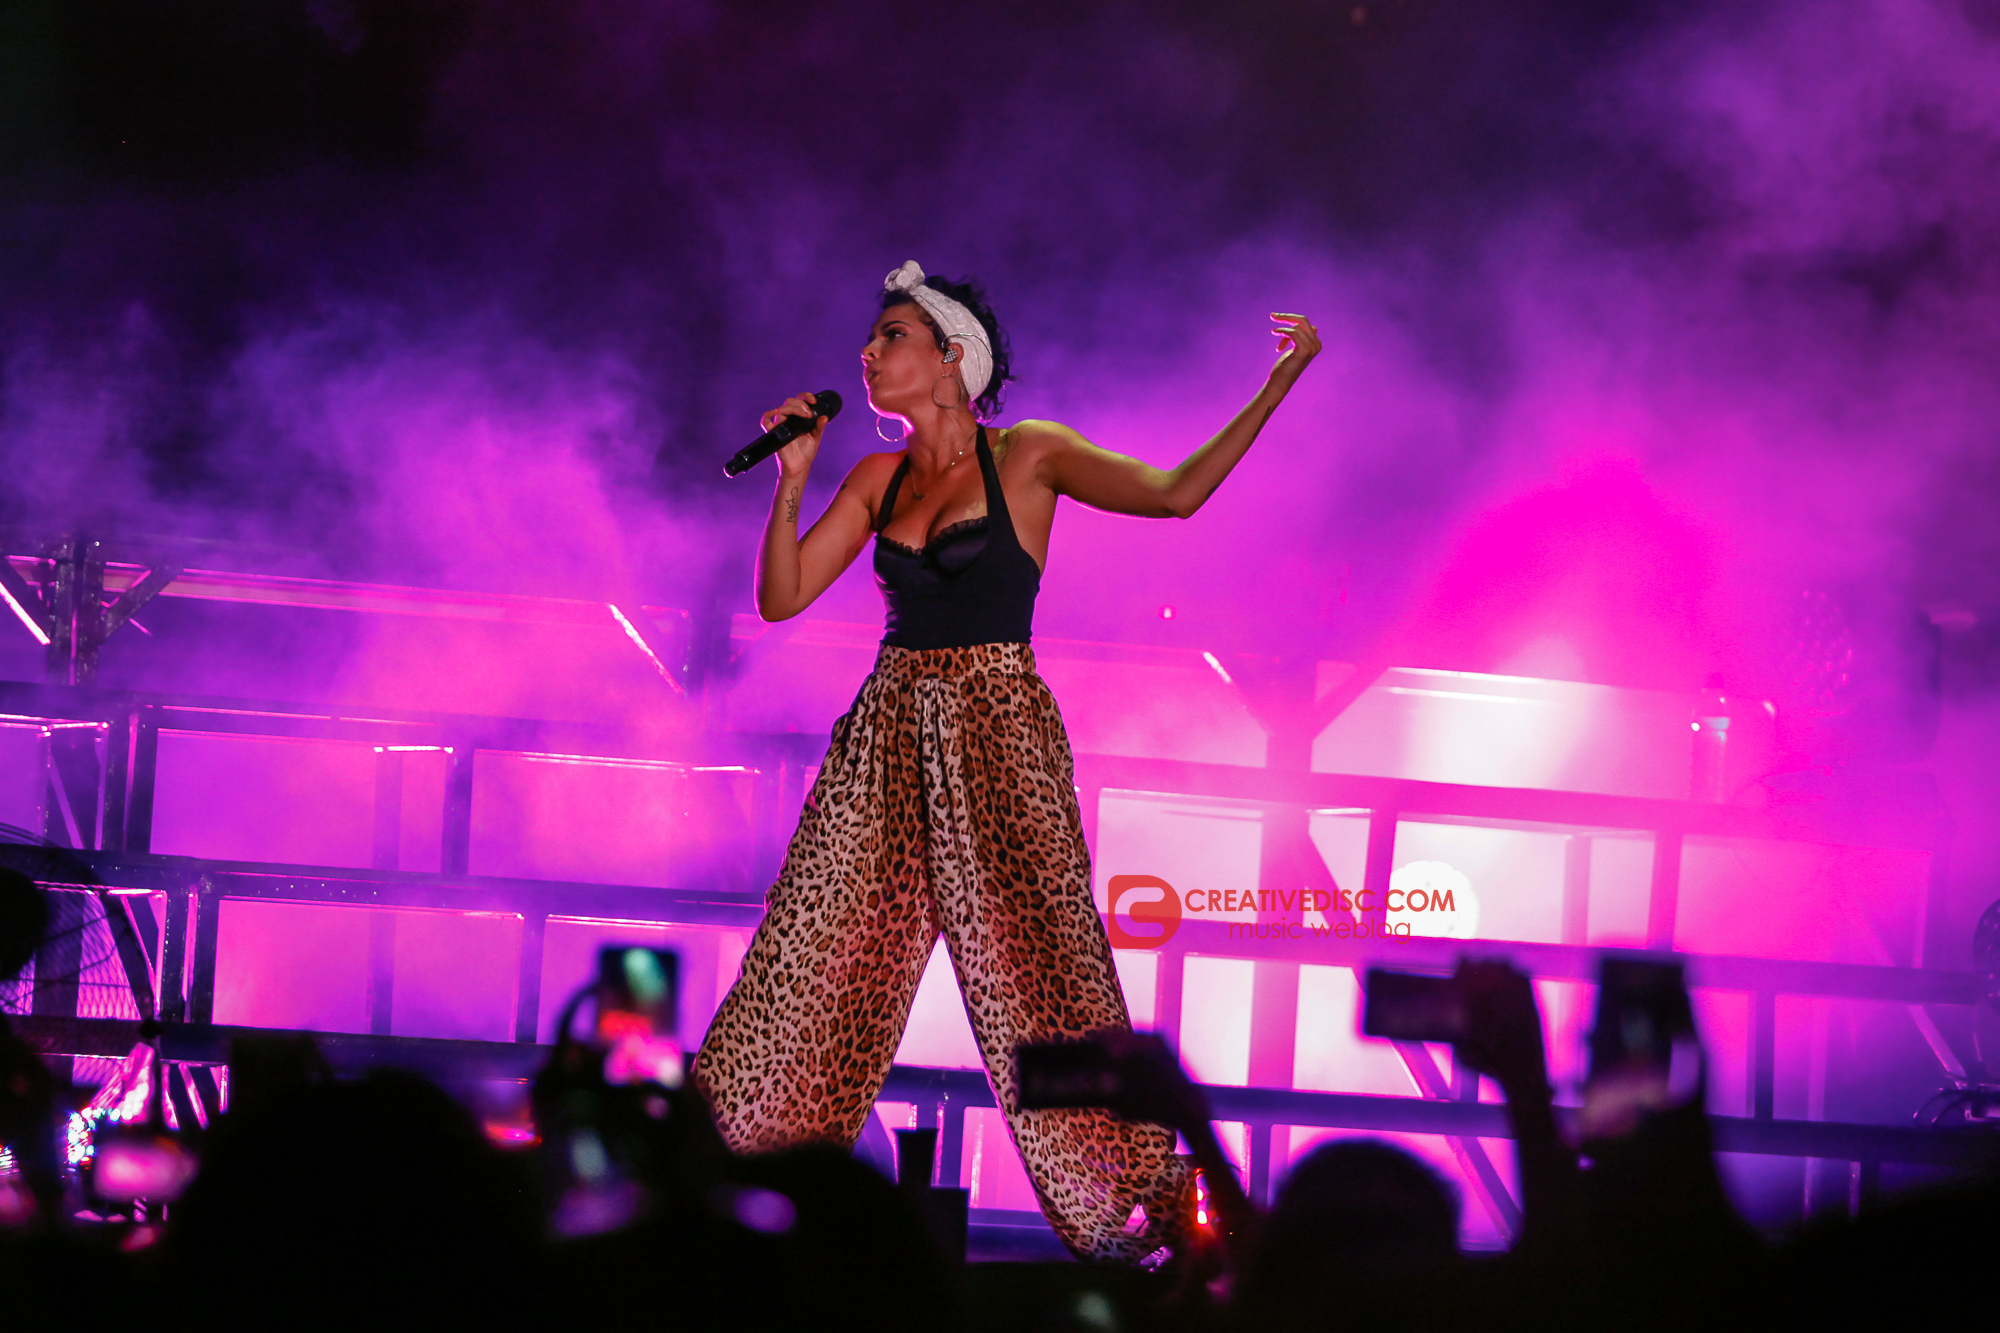 HALSEY Tampil Outstanding di ON/OFF Festival 2018